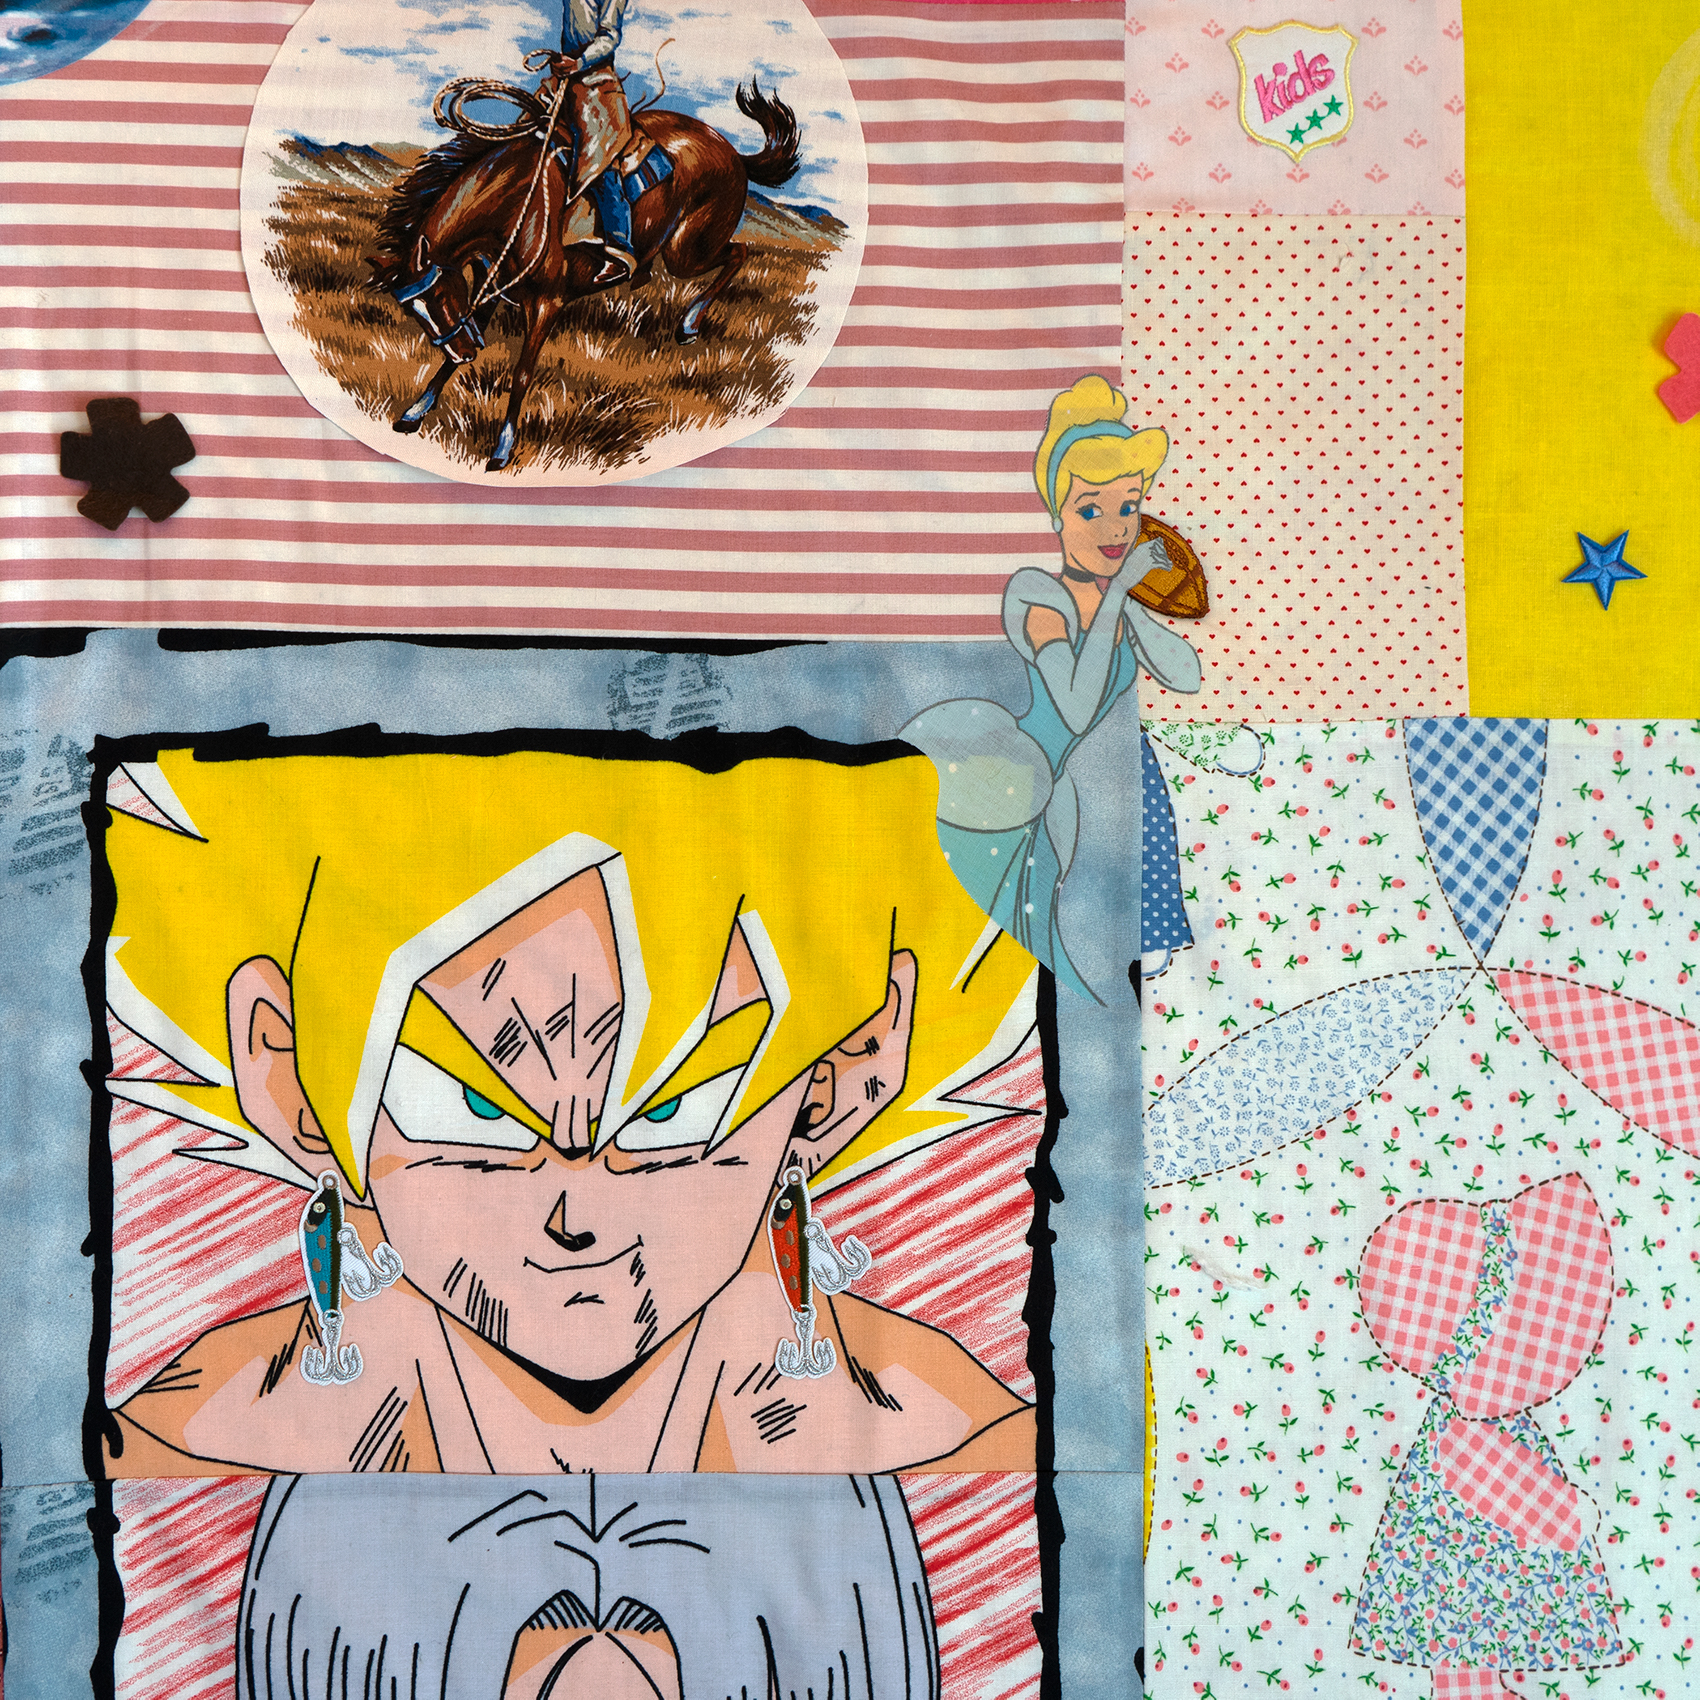 collaged textile artwork with different patterns in blues and pink with figural images overlay